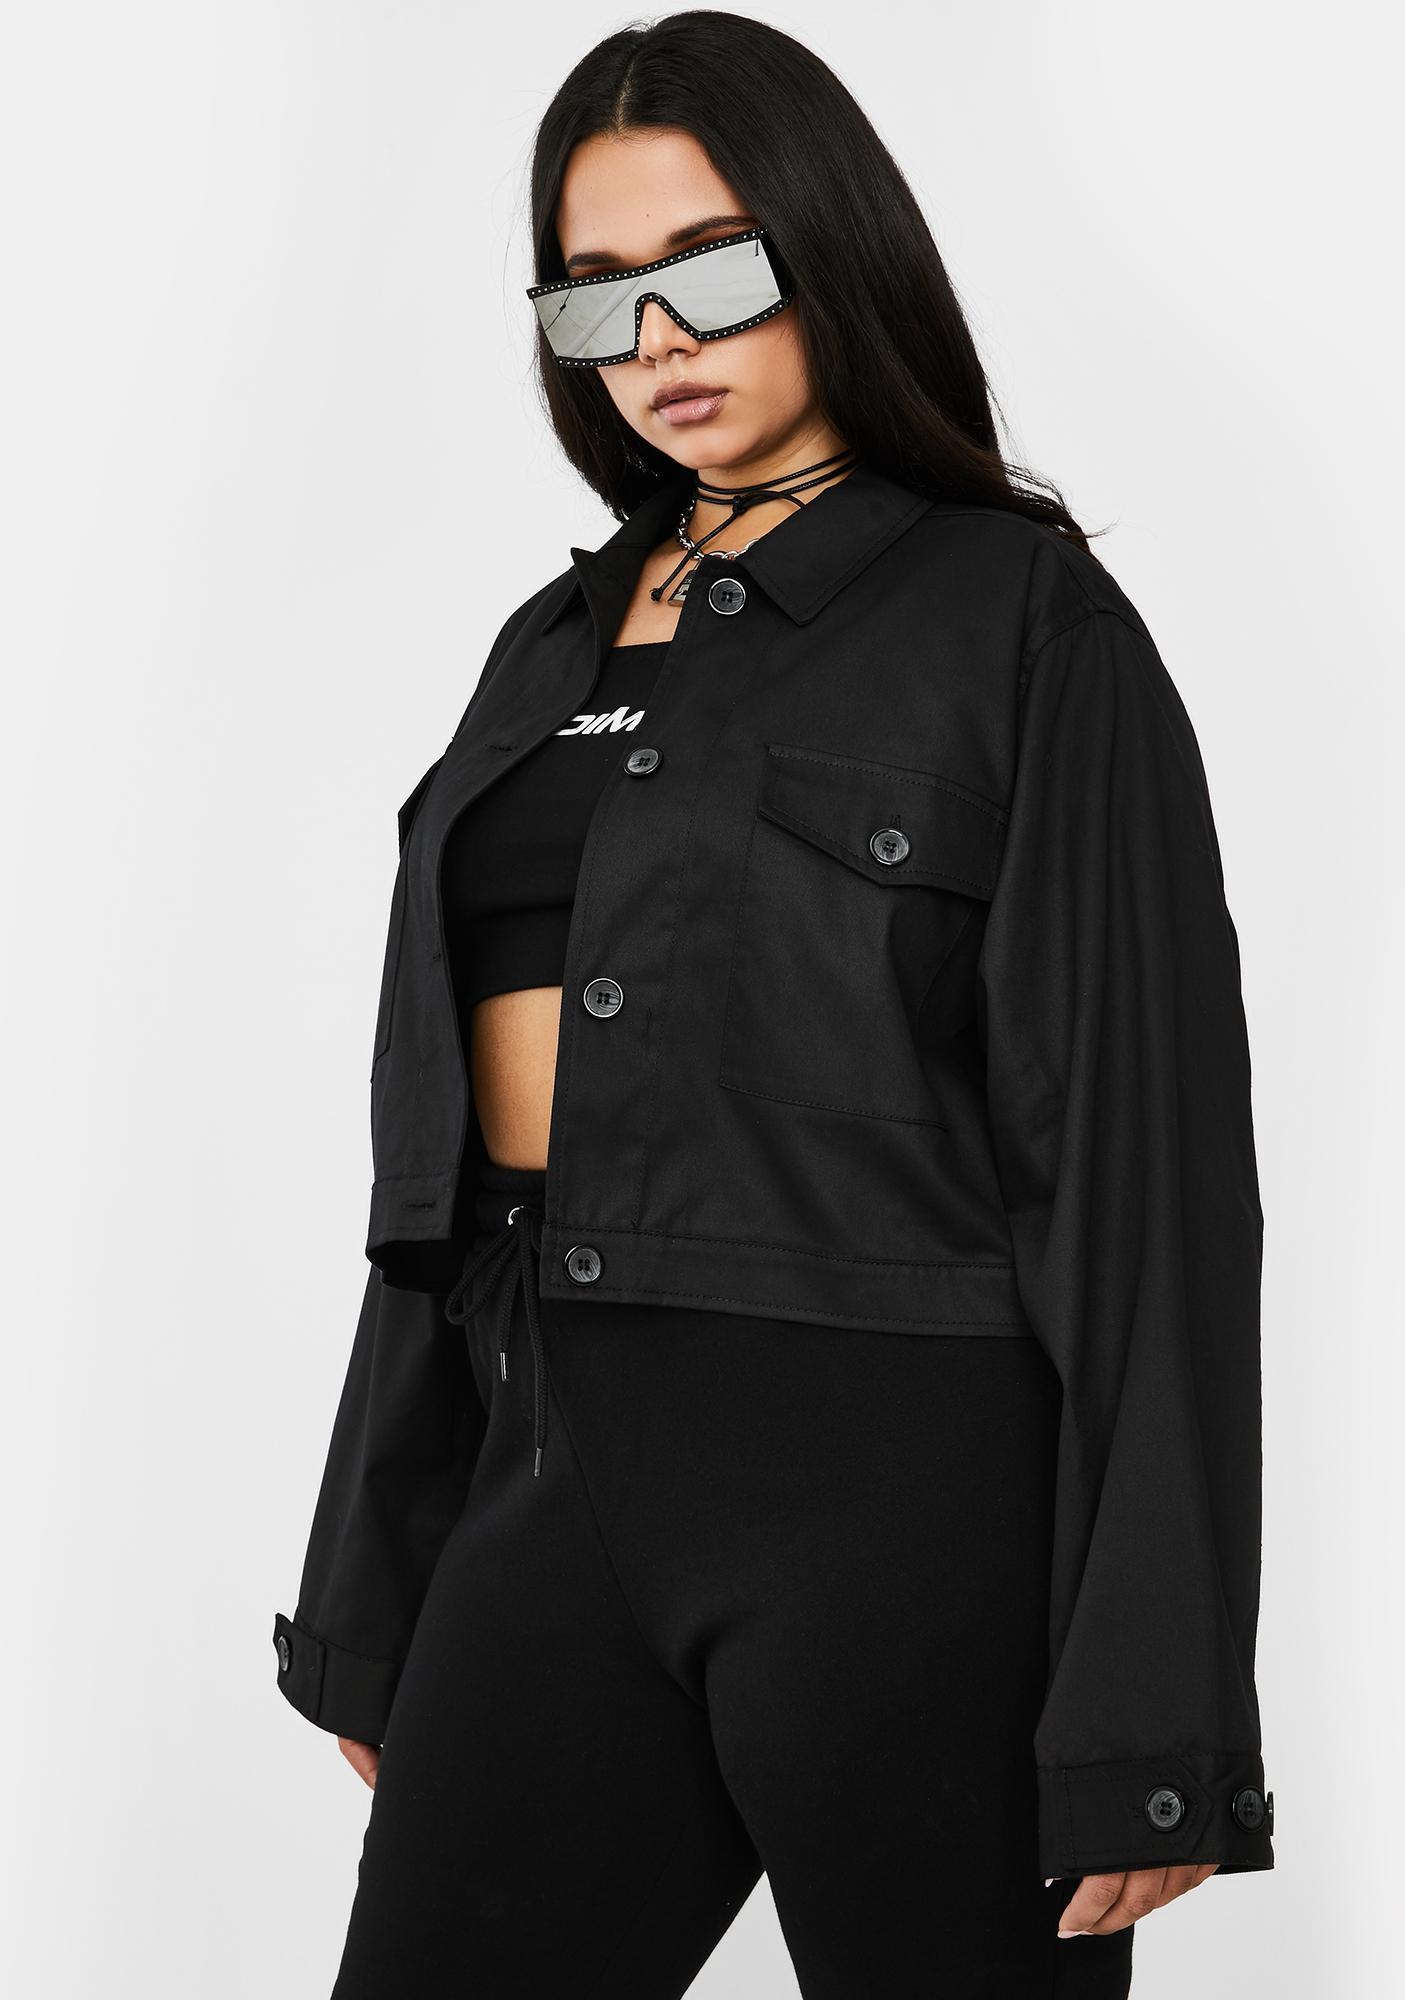 Poster Grl Late Booked Meetings On Rodeo Utility Jacket